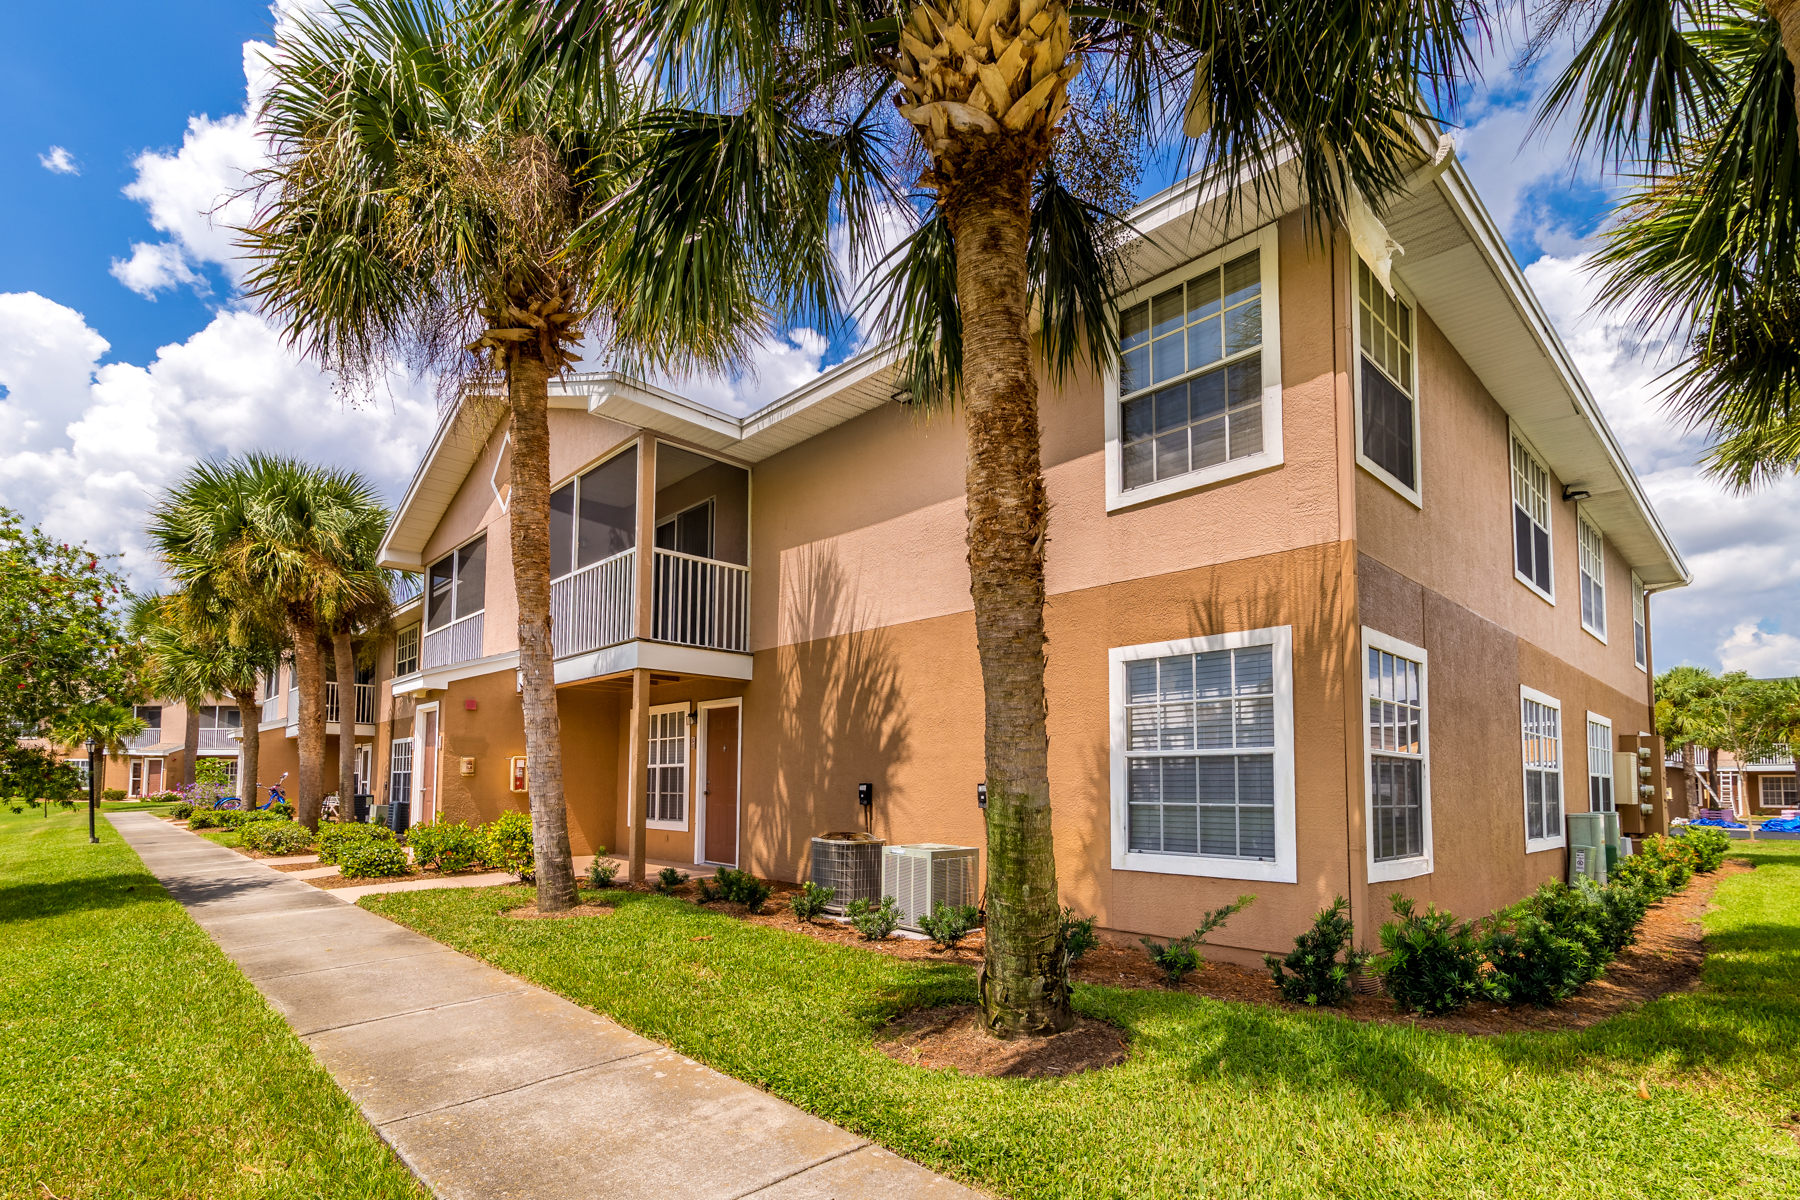 Single Family Home for Sale at Charming Villa in Greens at Viera East 1810 Long Iron Drive #324 Rockledge, Florida 32955 United States